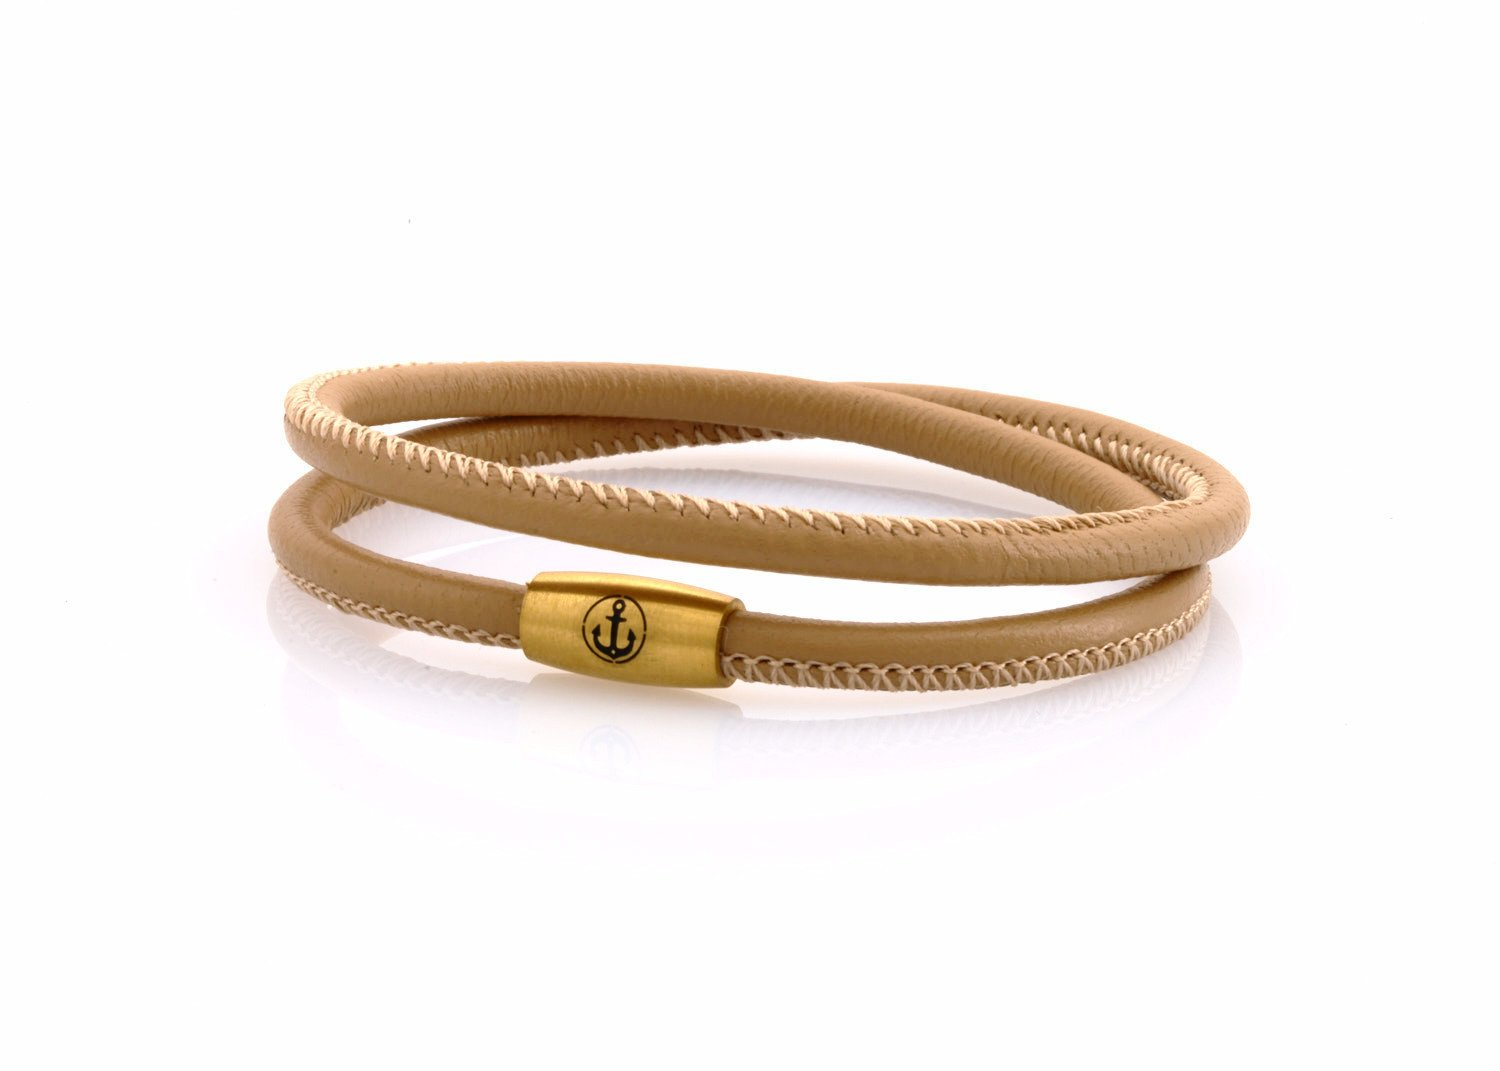 neptn women bracelet JUNO Anchor Gold double 4 cappuccino nappa leather